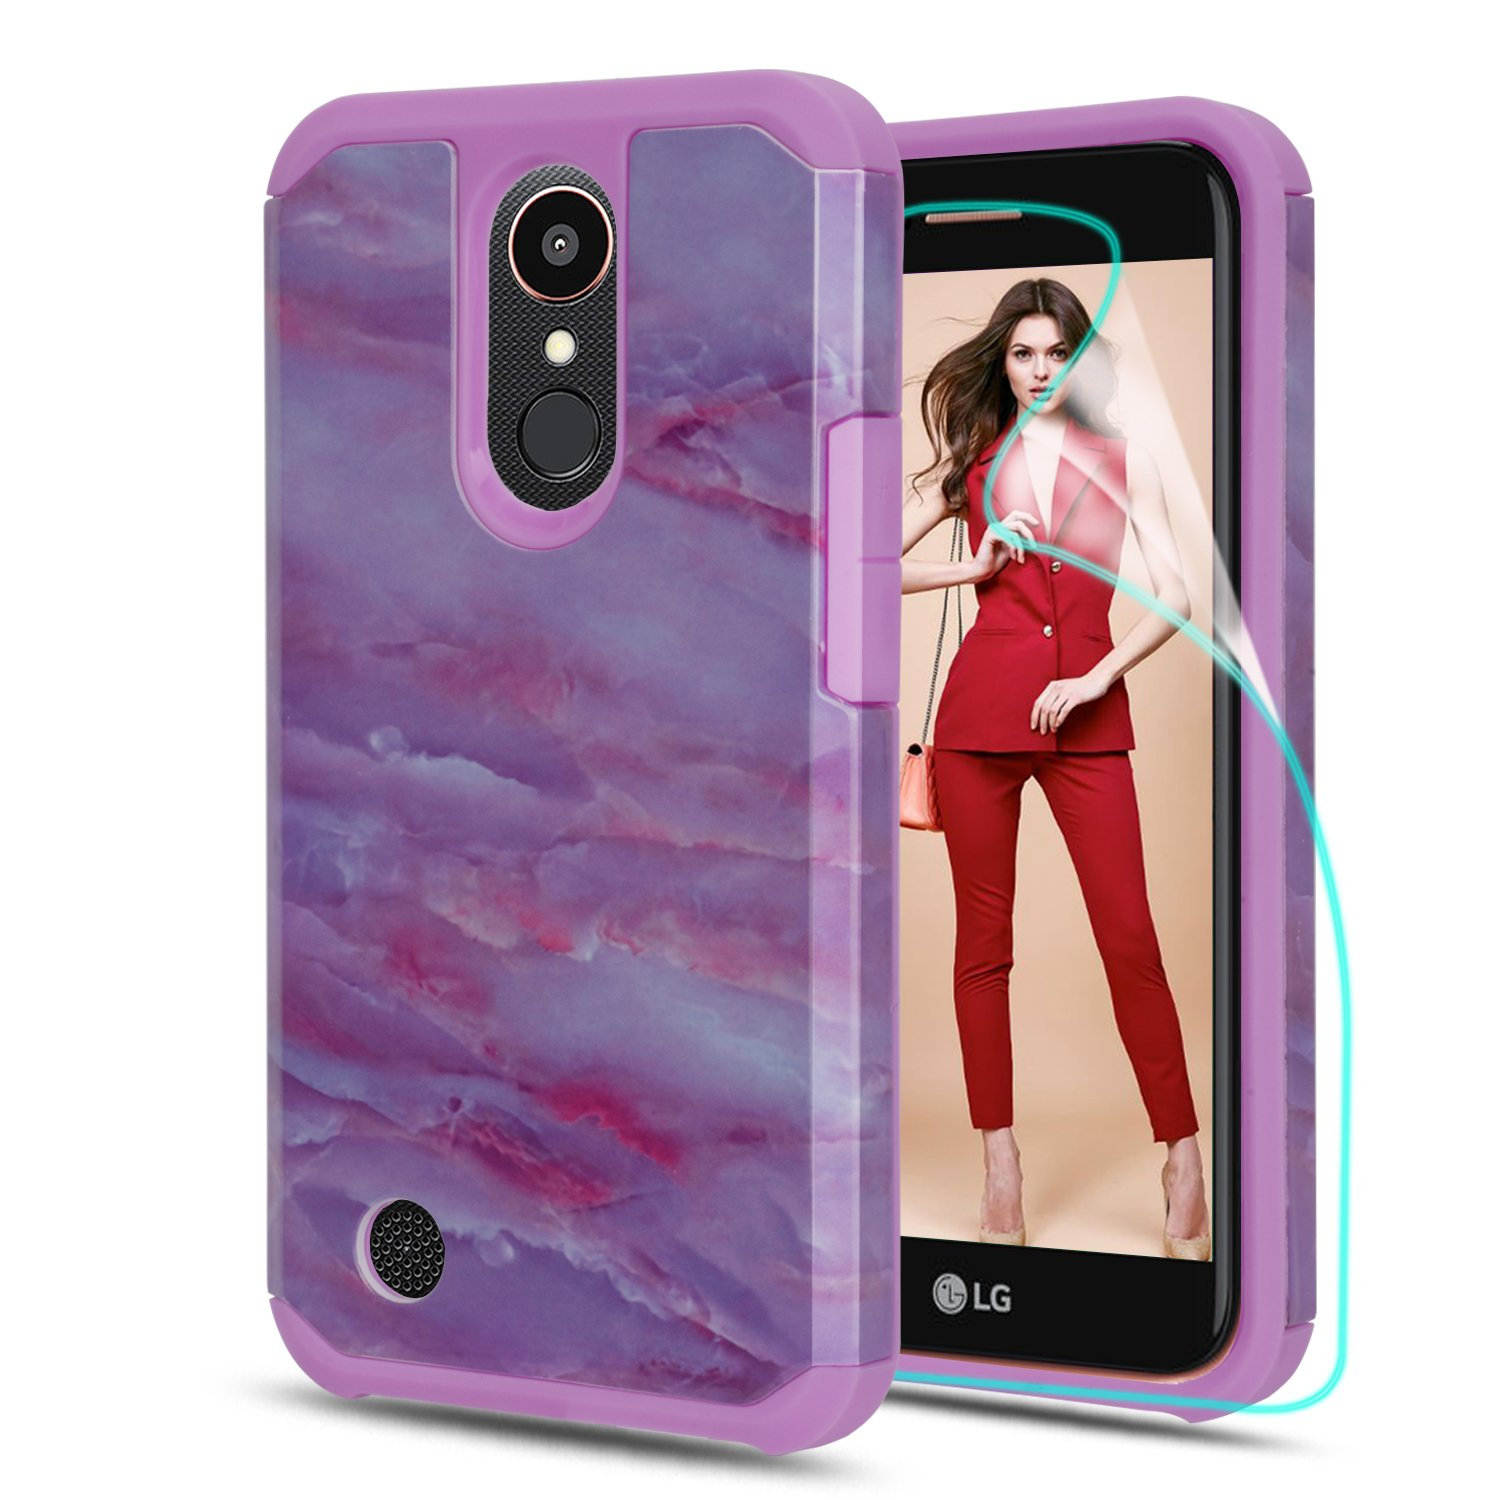 LG K20 V Case, LG K20 Plus / LG Harmony / LG K10 2017 / LG Grace Case With HD Phone Screen Protector,Marble Pattern Shock Absorption Hybrid Dual Layer Armor Protective Cover for LG LV5-DLS Purple